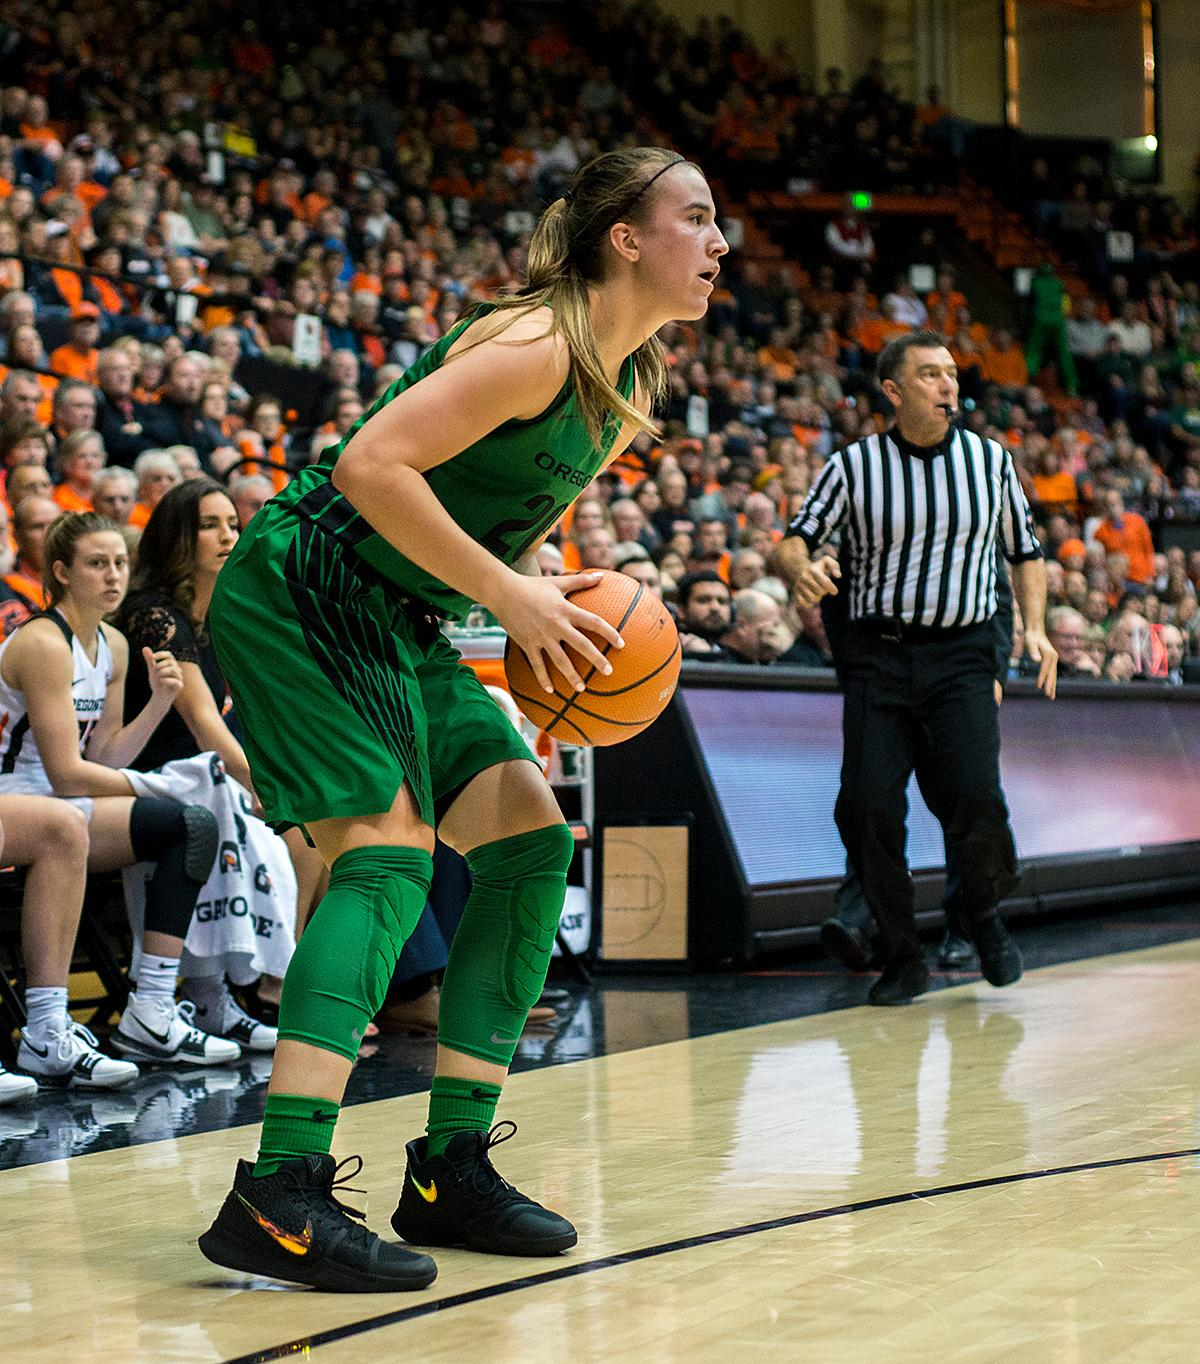 Oregon Ducks guard Sabrina Ionescu (#20) prepares to shoot after scooping a runaway ball and driving down the court.The Oregon Ducks were defeated by the Oregon State Beavers 85-79 on Friday night in Corvallis. Sabrina Ionescu scored 35 points and Ruthy Hebard added 24. The Ducks will face the Beavers this Sunday at 5 p.m. at Matthew Knight Arena. Photo by Abigail Winn, Oregon News Lab